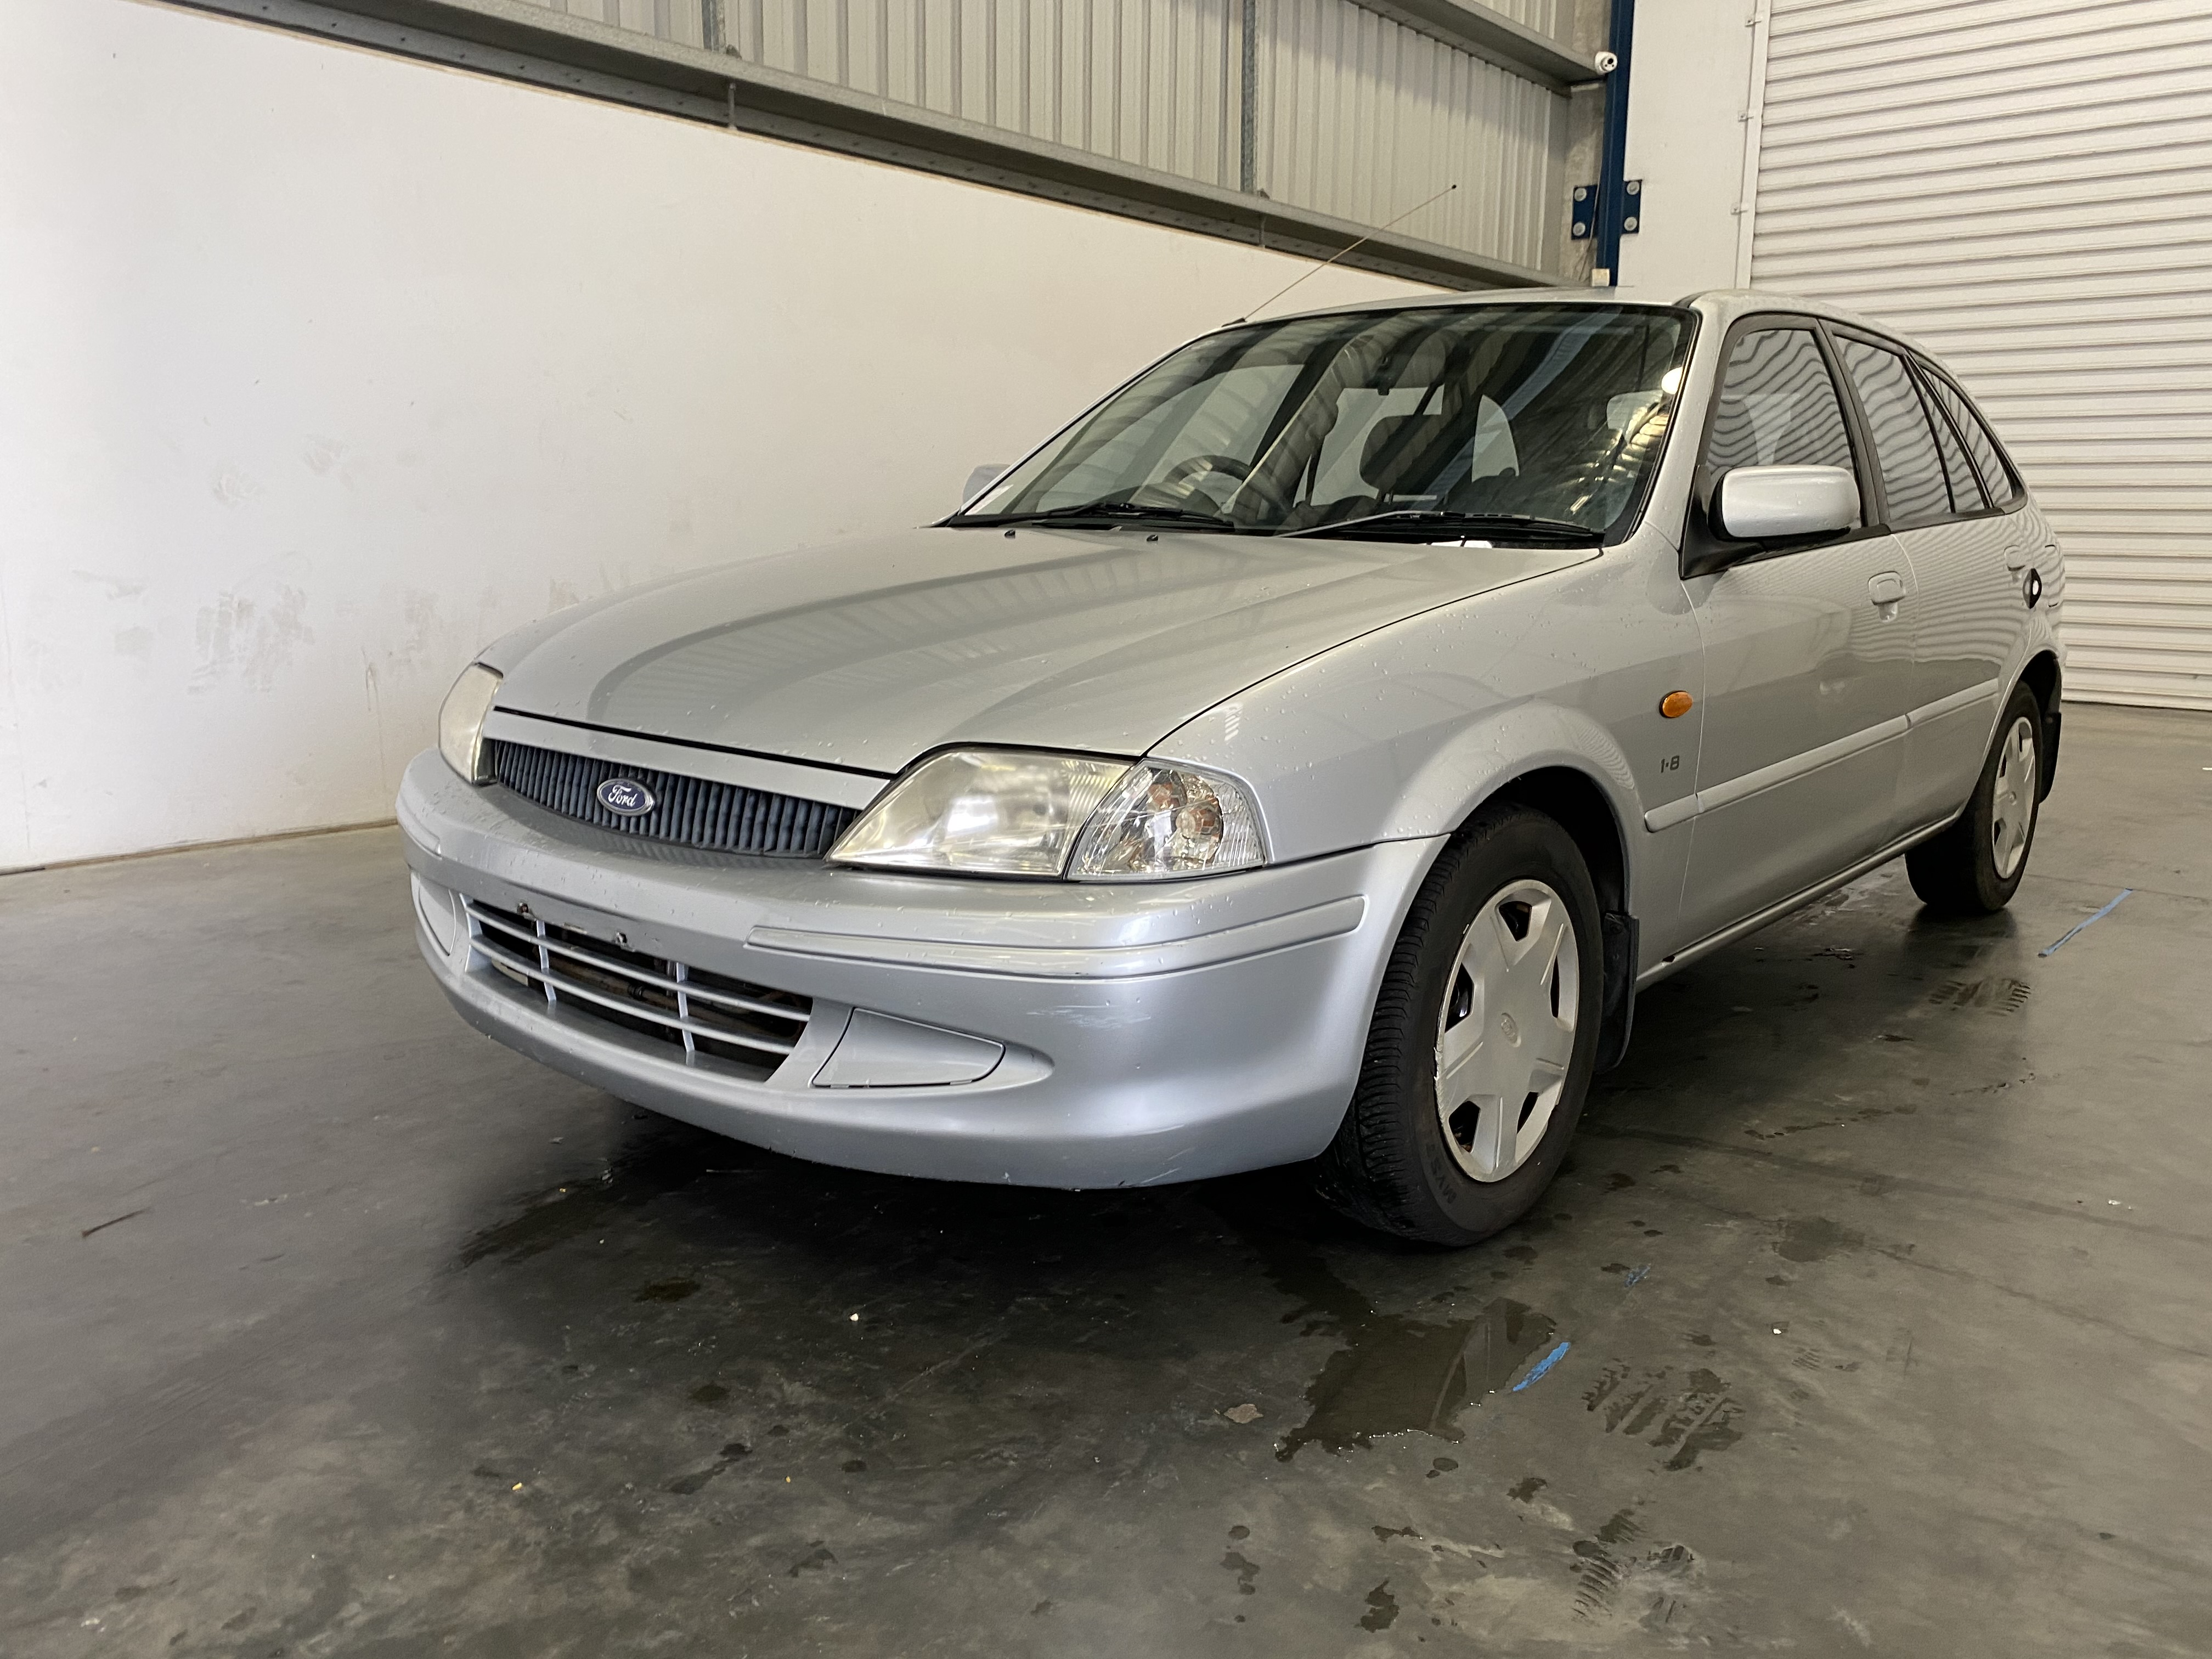 2000 Ford Laser GLXI KN Automatic Hatchback